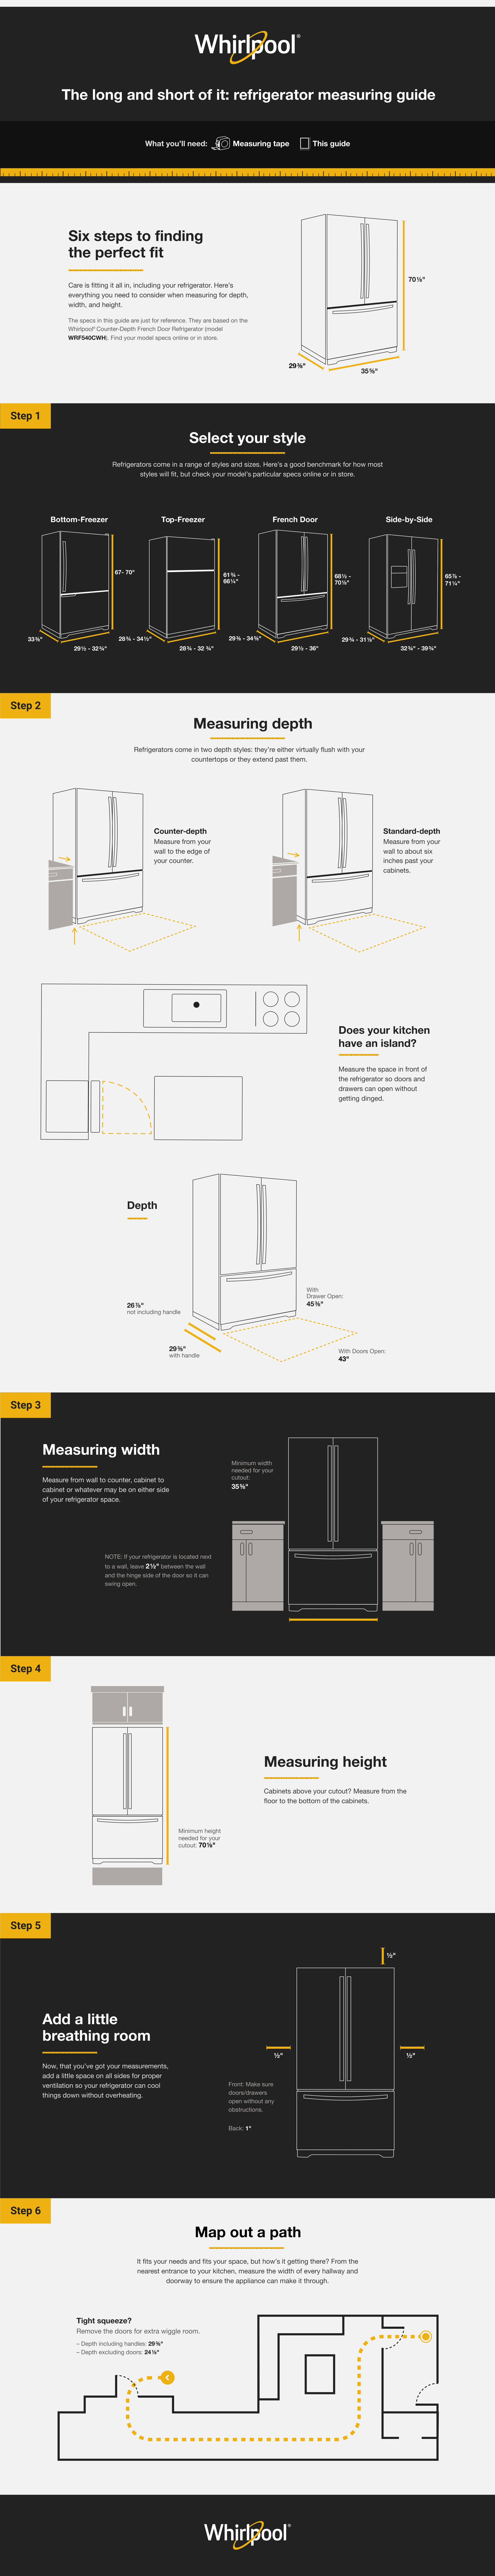 the long and short of it refrigerator measuring guide